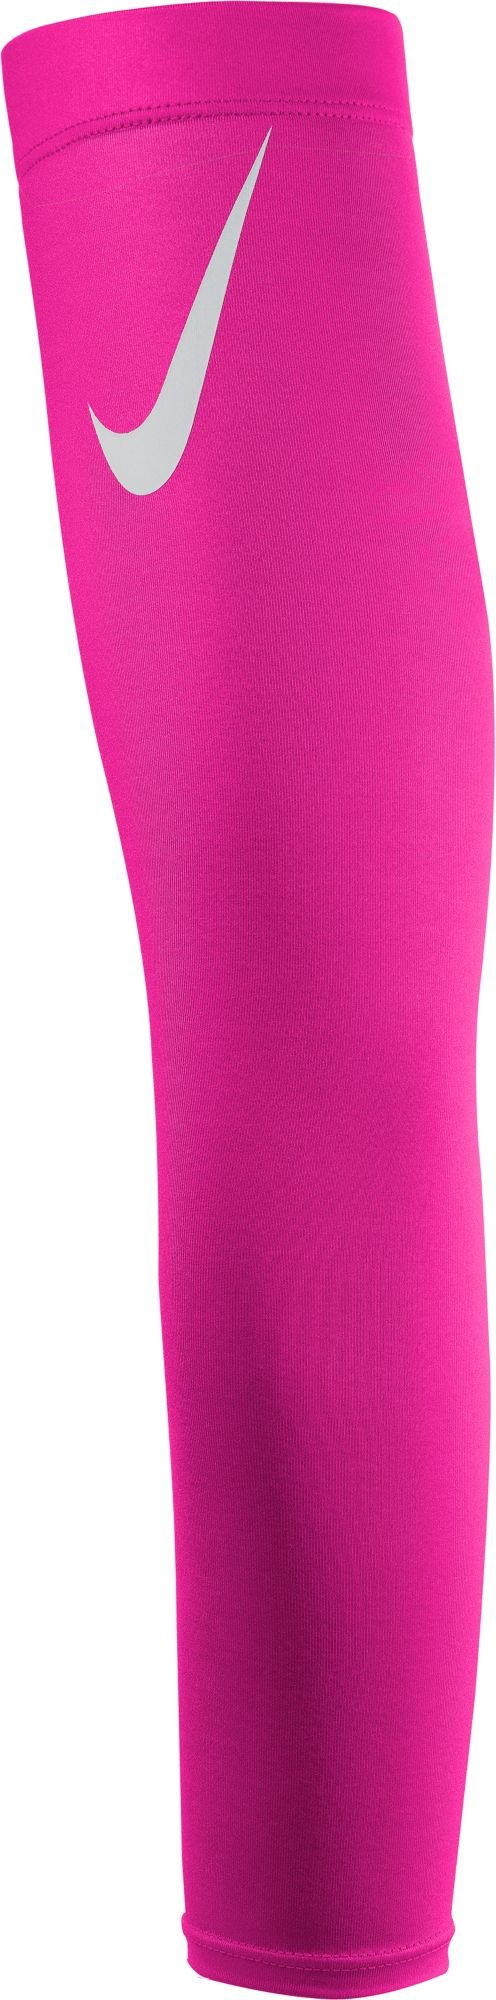 Nike BCA Dri-FIT Arm Sleeve 3.0 (Pink, SM) by Nike